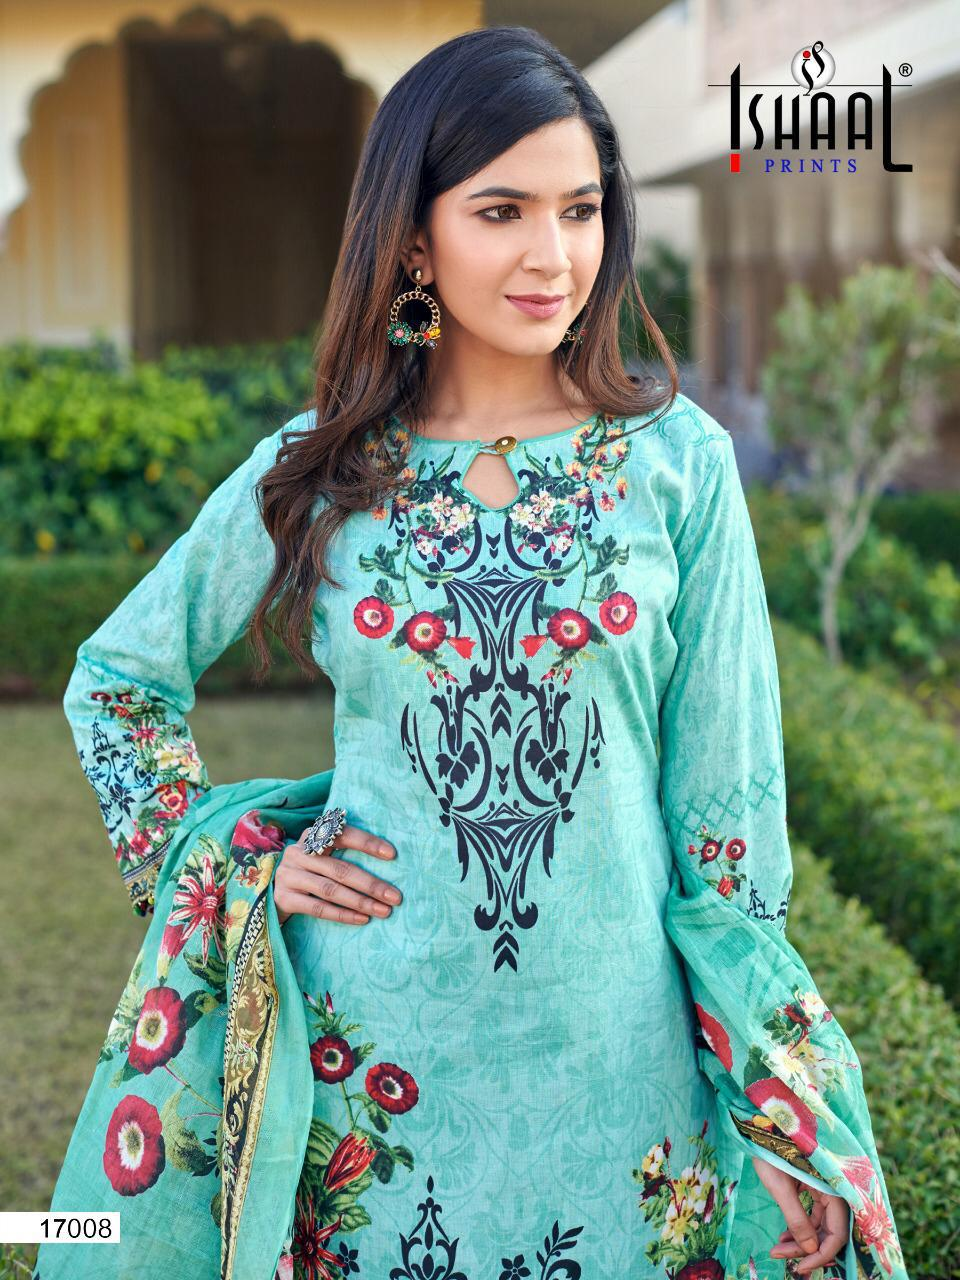 Ishaal Print Gulmohar Vol 17 Designer Lawn Collection With Mal Mal Dupatta Suits Wholesale